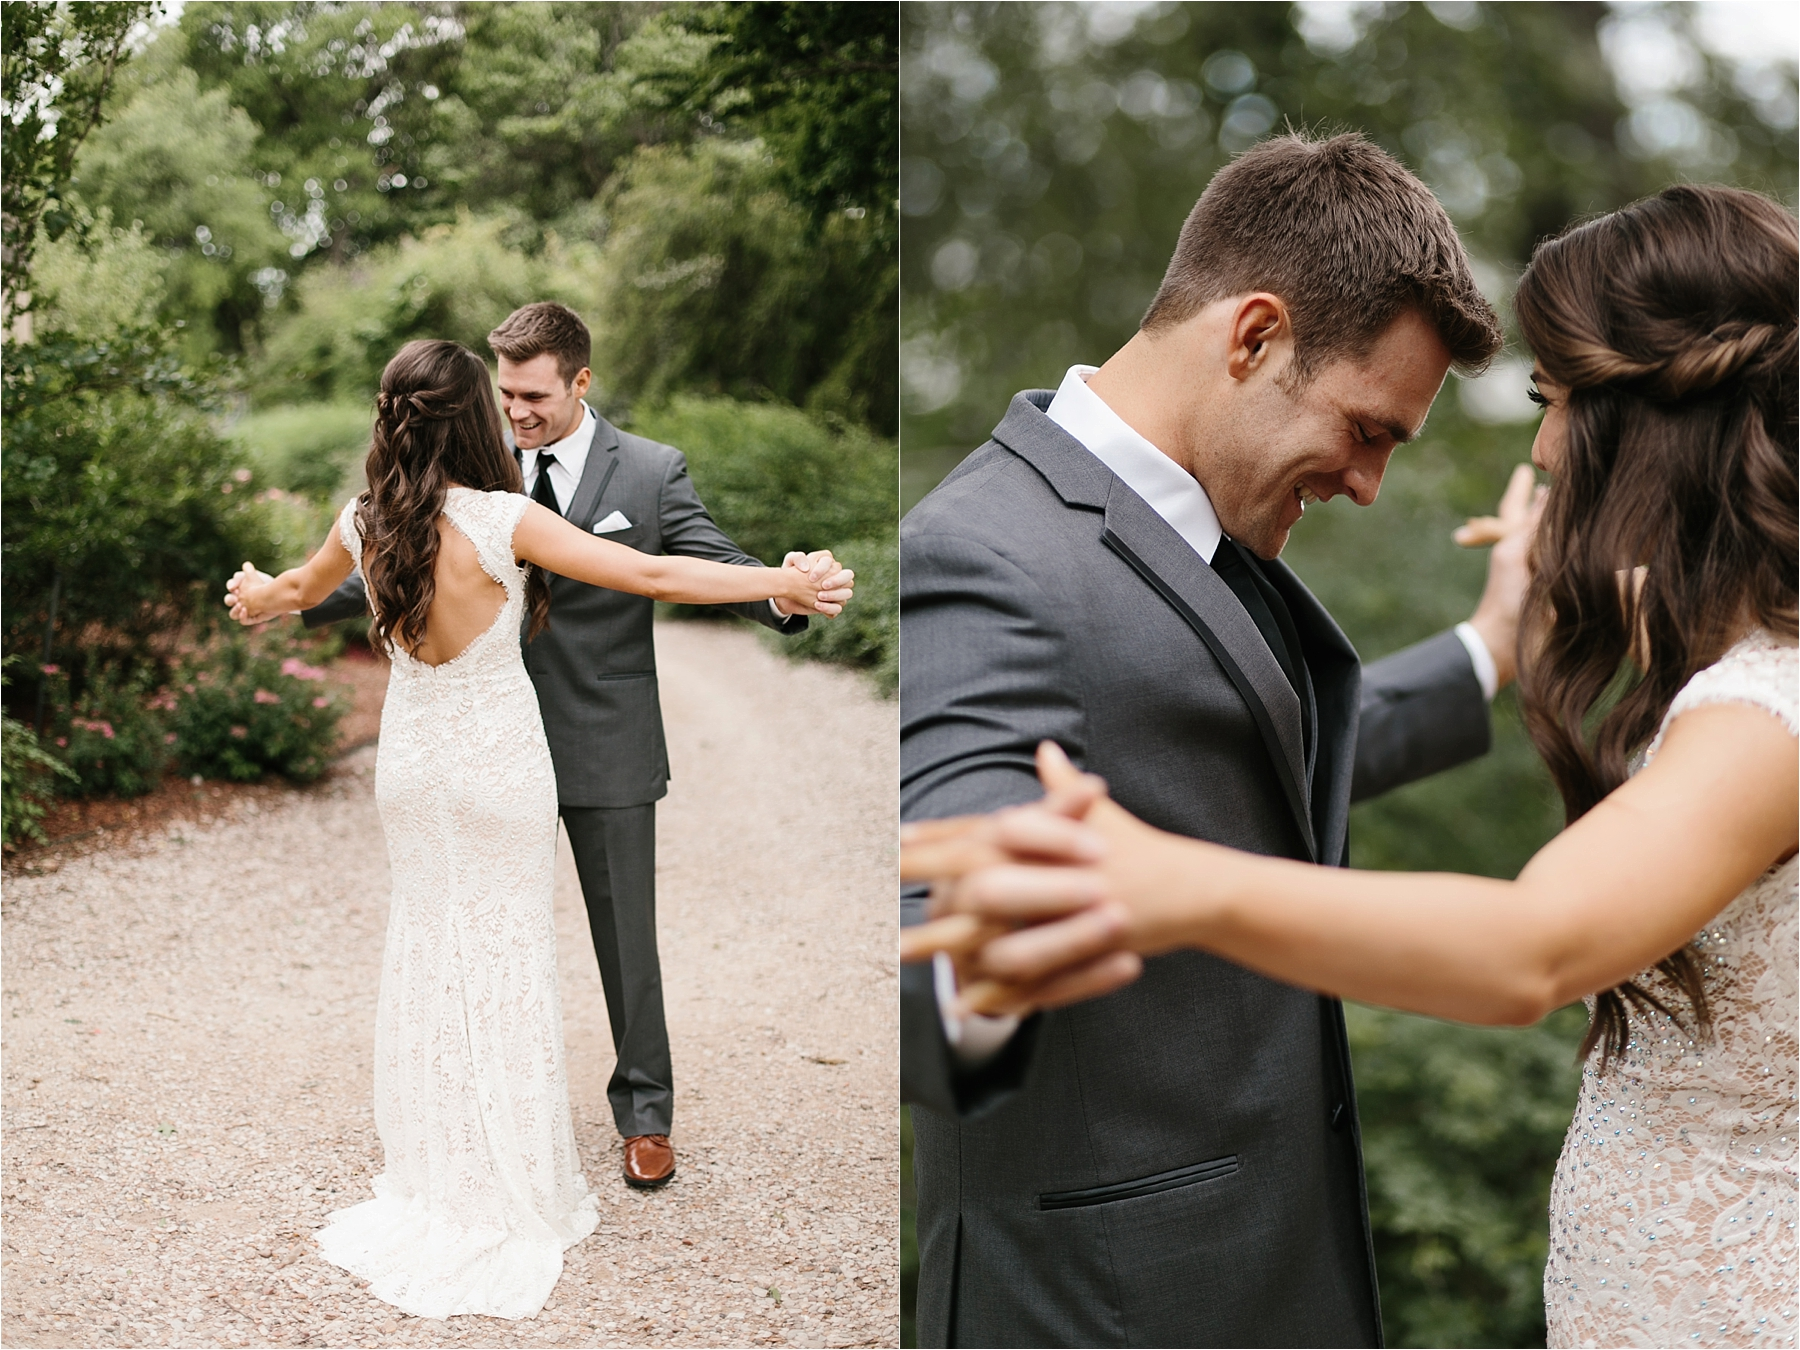 Devyn + Caden __ a Dallas Arboretum Garden Style Wedding by North Texas Wedding Photographer Rachel Meagan Photography __ 018